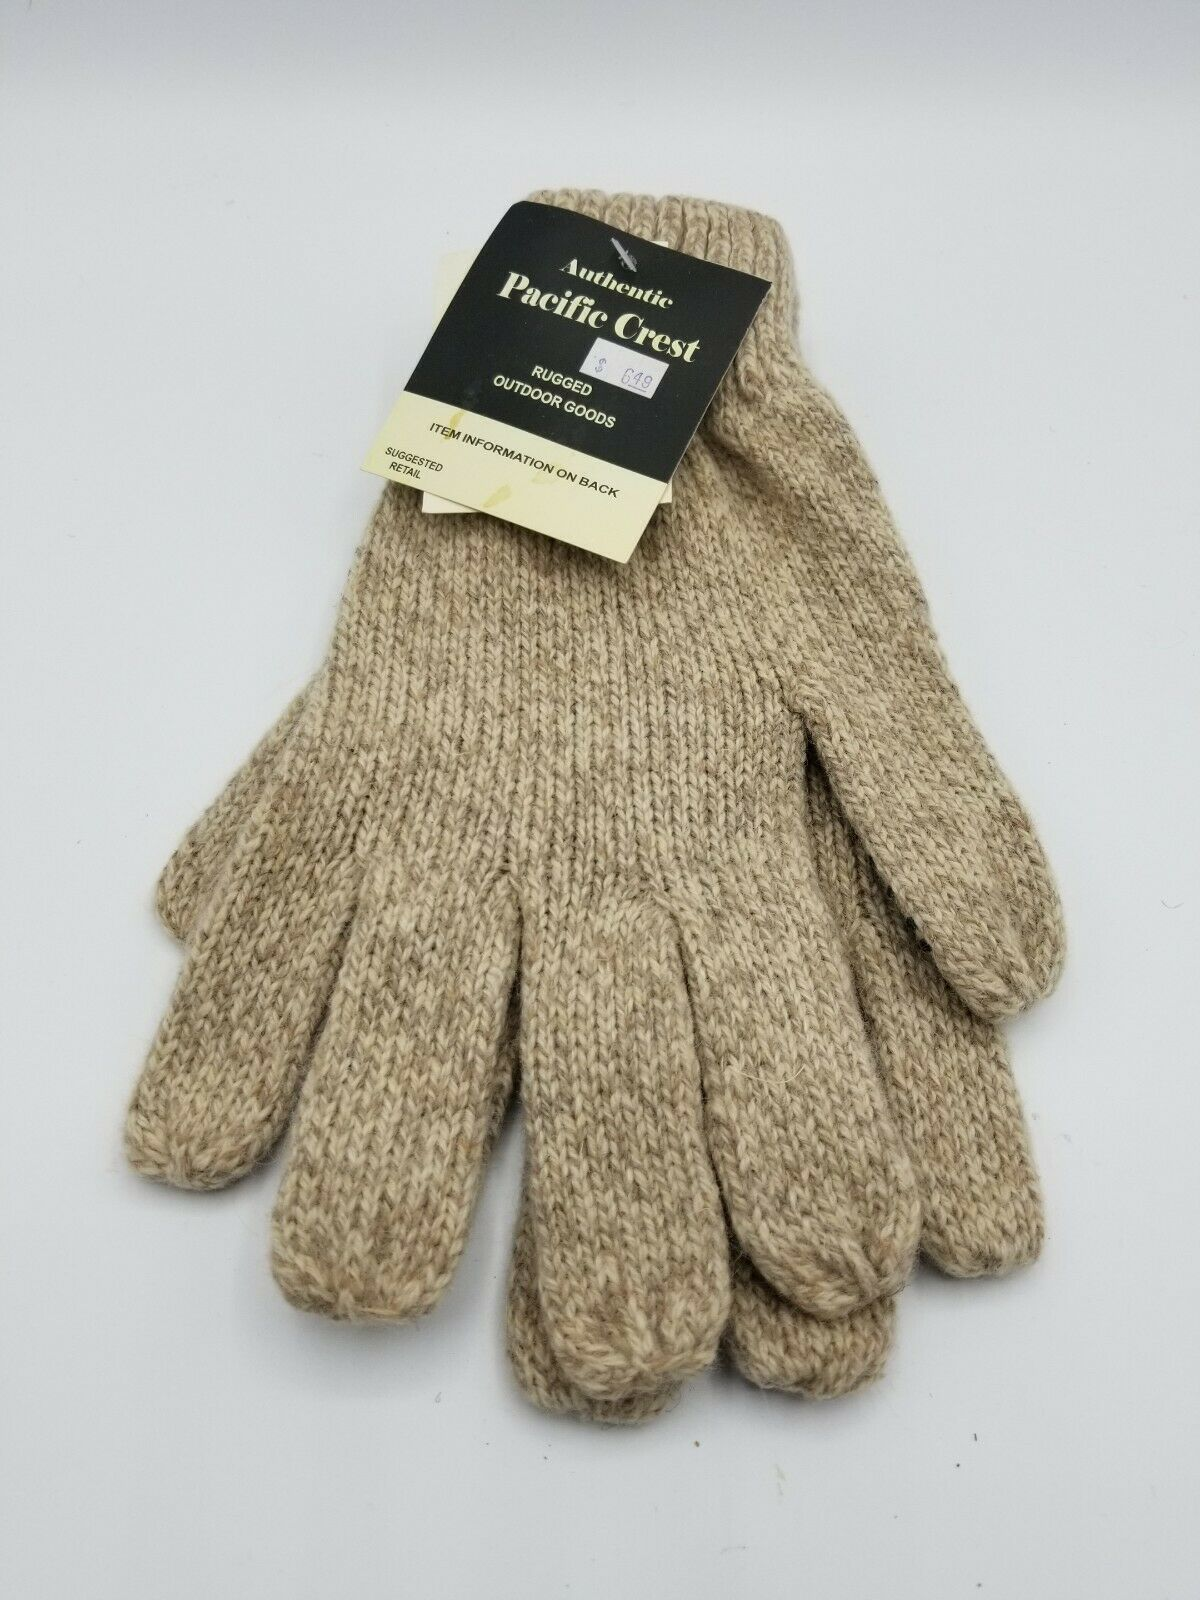 Primary image for Pacific Crest Wool Blend Working Gloves with Non-Slip Grip